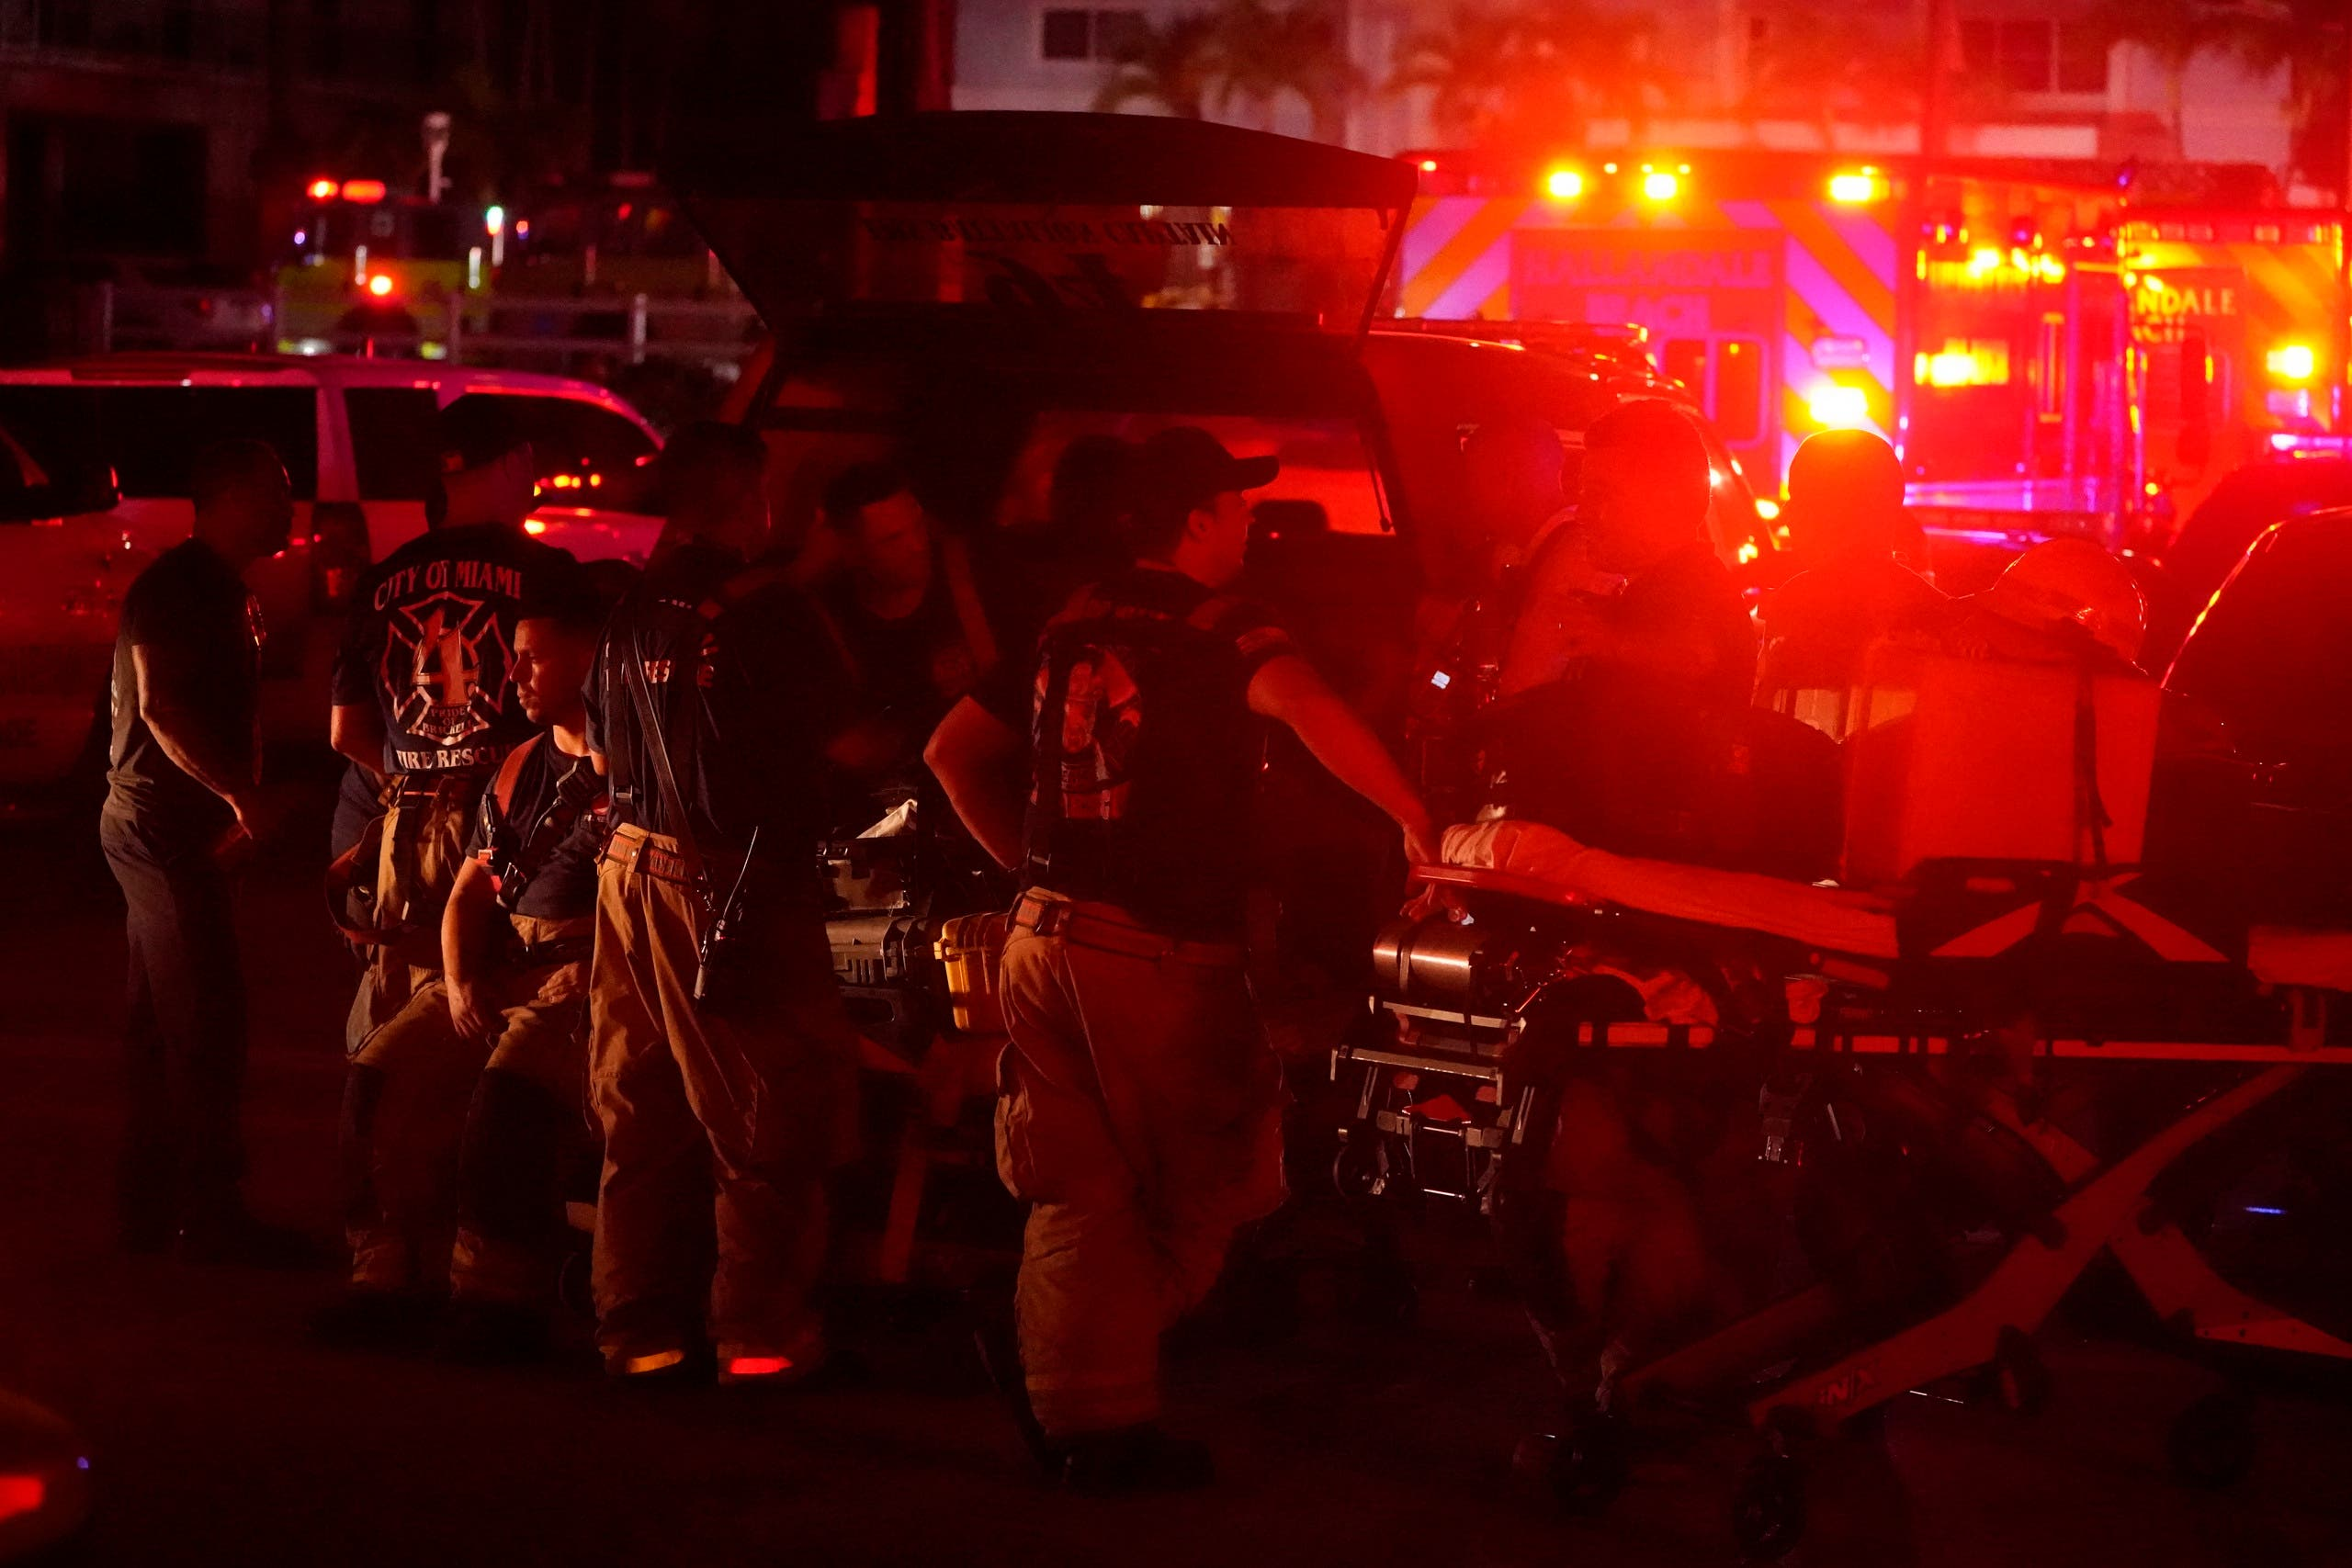 Firefighters standby after a partial collapse of a building, Thursday, June 24, 2021, in the Surfside area of Miami, Florida. (AP)